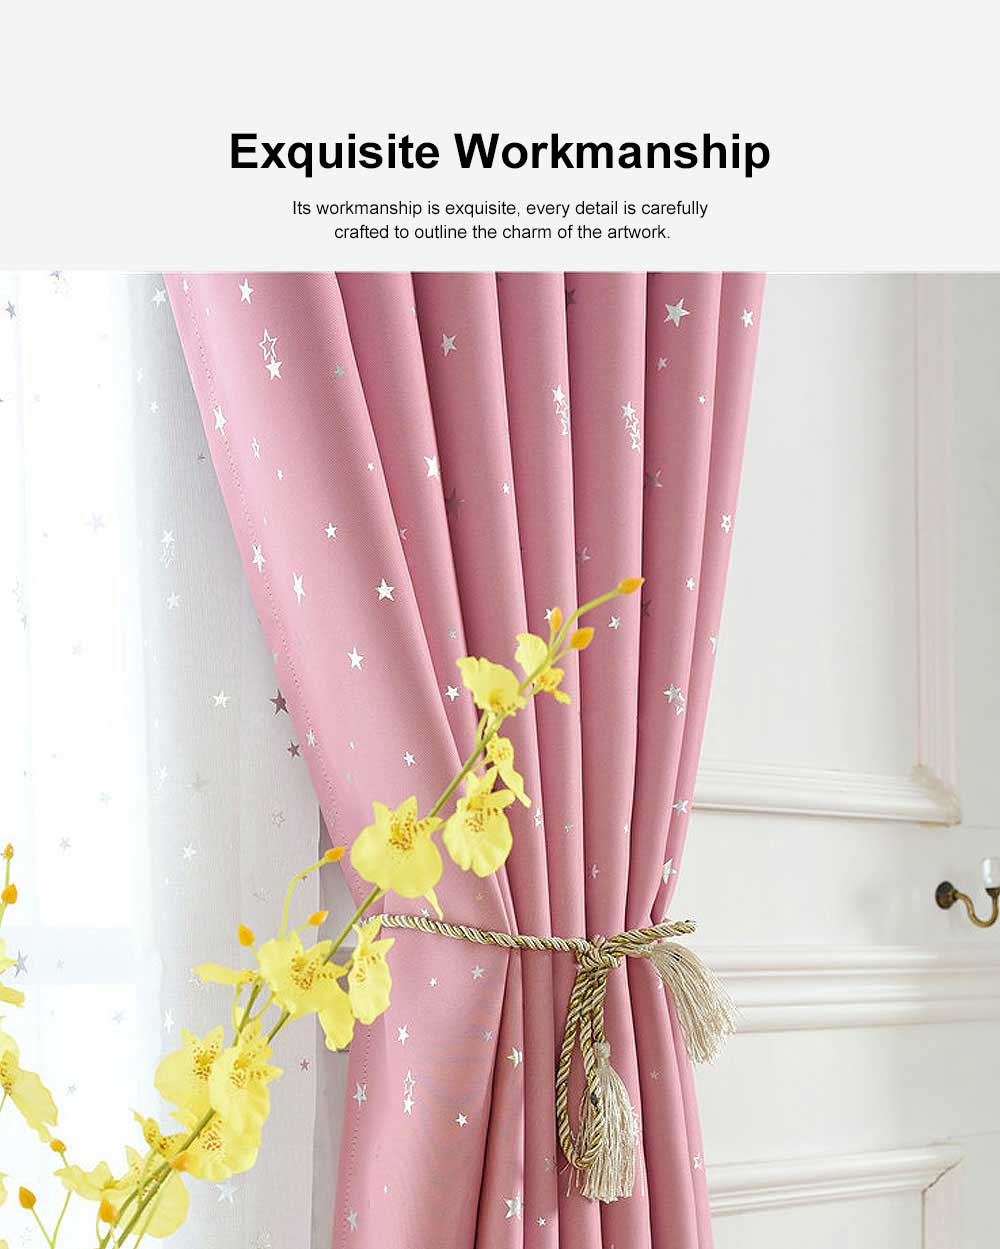 Star Hot Silver Curtain, Multicolor Curtains for Hotel Engineering, Living Room, Bedroom, High-quality Flannel Curtain 4